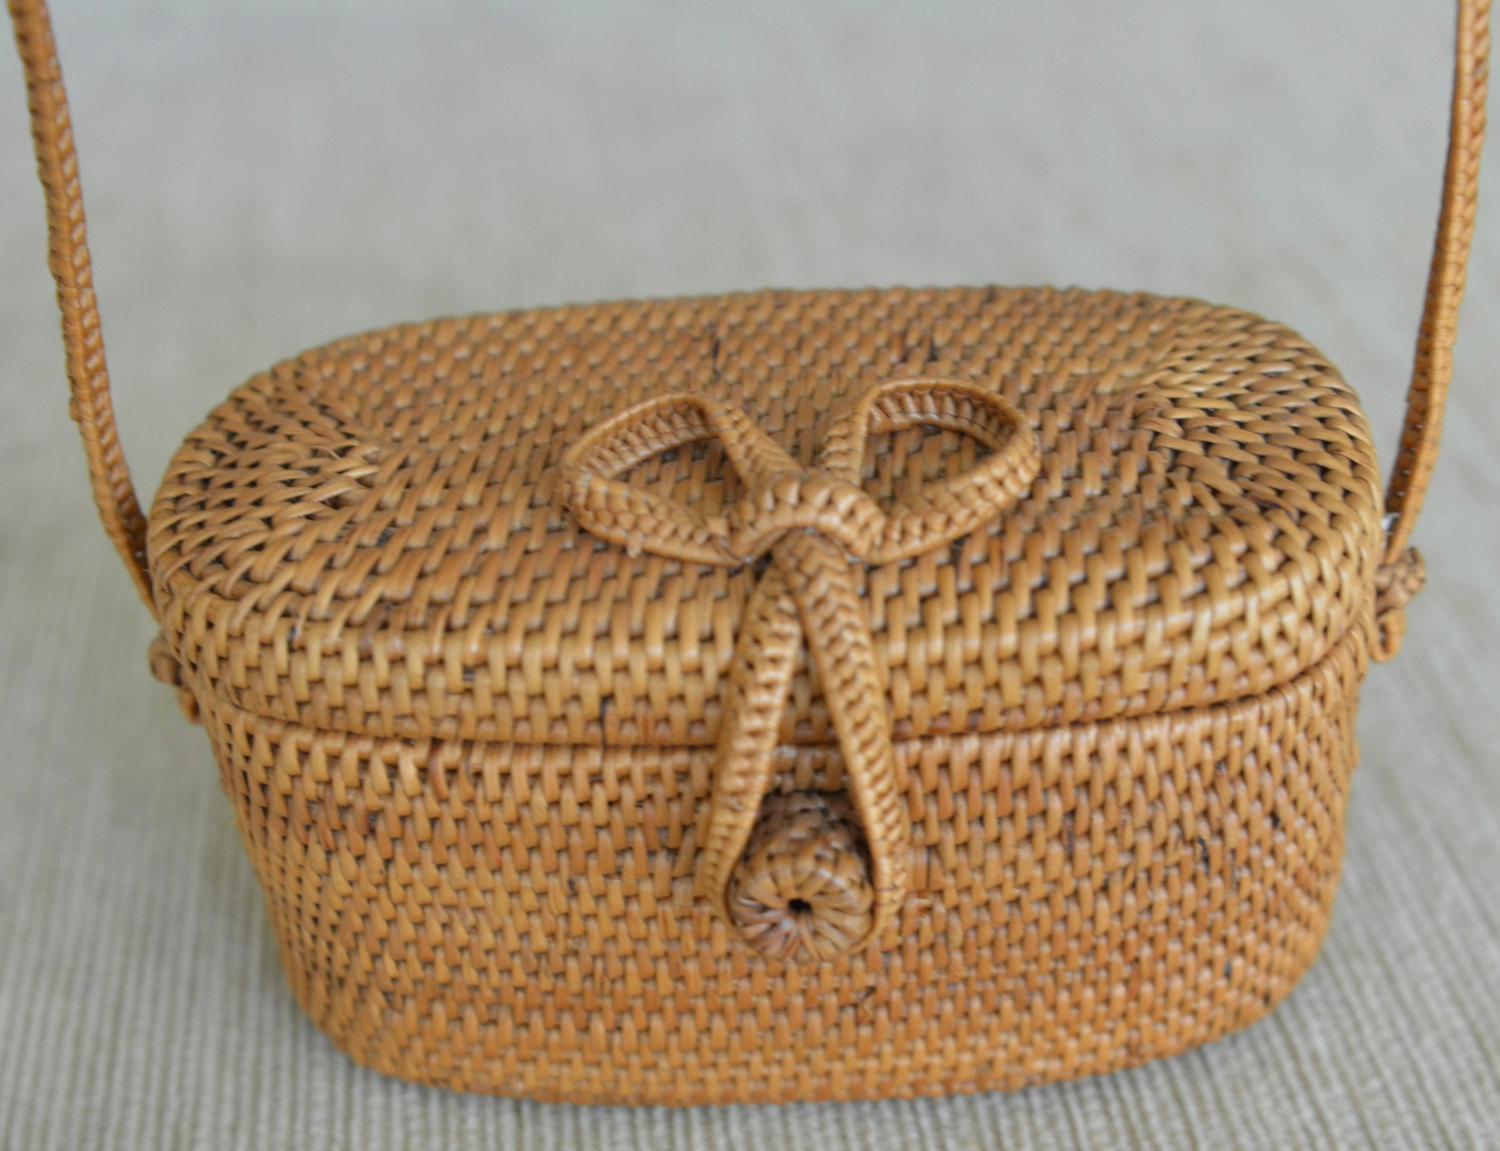 Woven Basket Purse : Basket purse tan woven rattan bag with brown leather straps